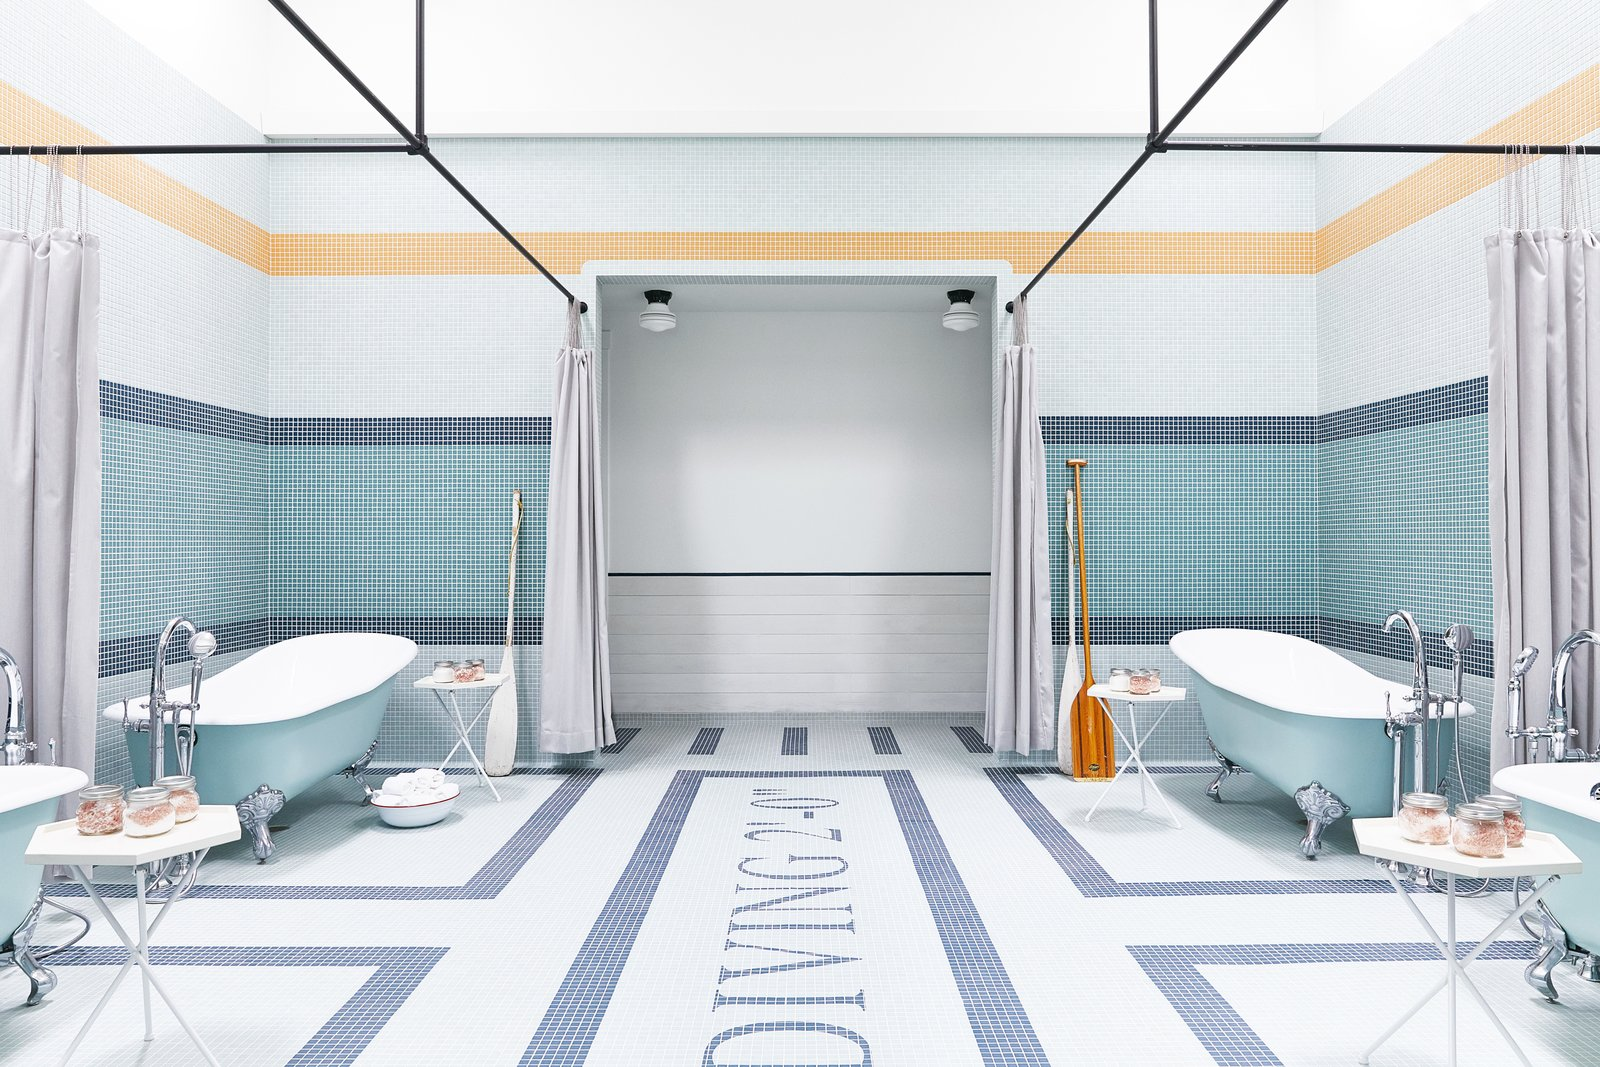 Bath Room, Freestanding Tub, Soaking Tub, Mosaic Tile Wall, and Ceiling Lighting Outfitted with four mint green clawfoot tubs, the bathing room is where guests can steep in medicinal salt soaks.  Photo 9 of 9 in A Napa Valley Motor Lodge Reinterprets the Classic Roadside Motel